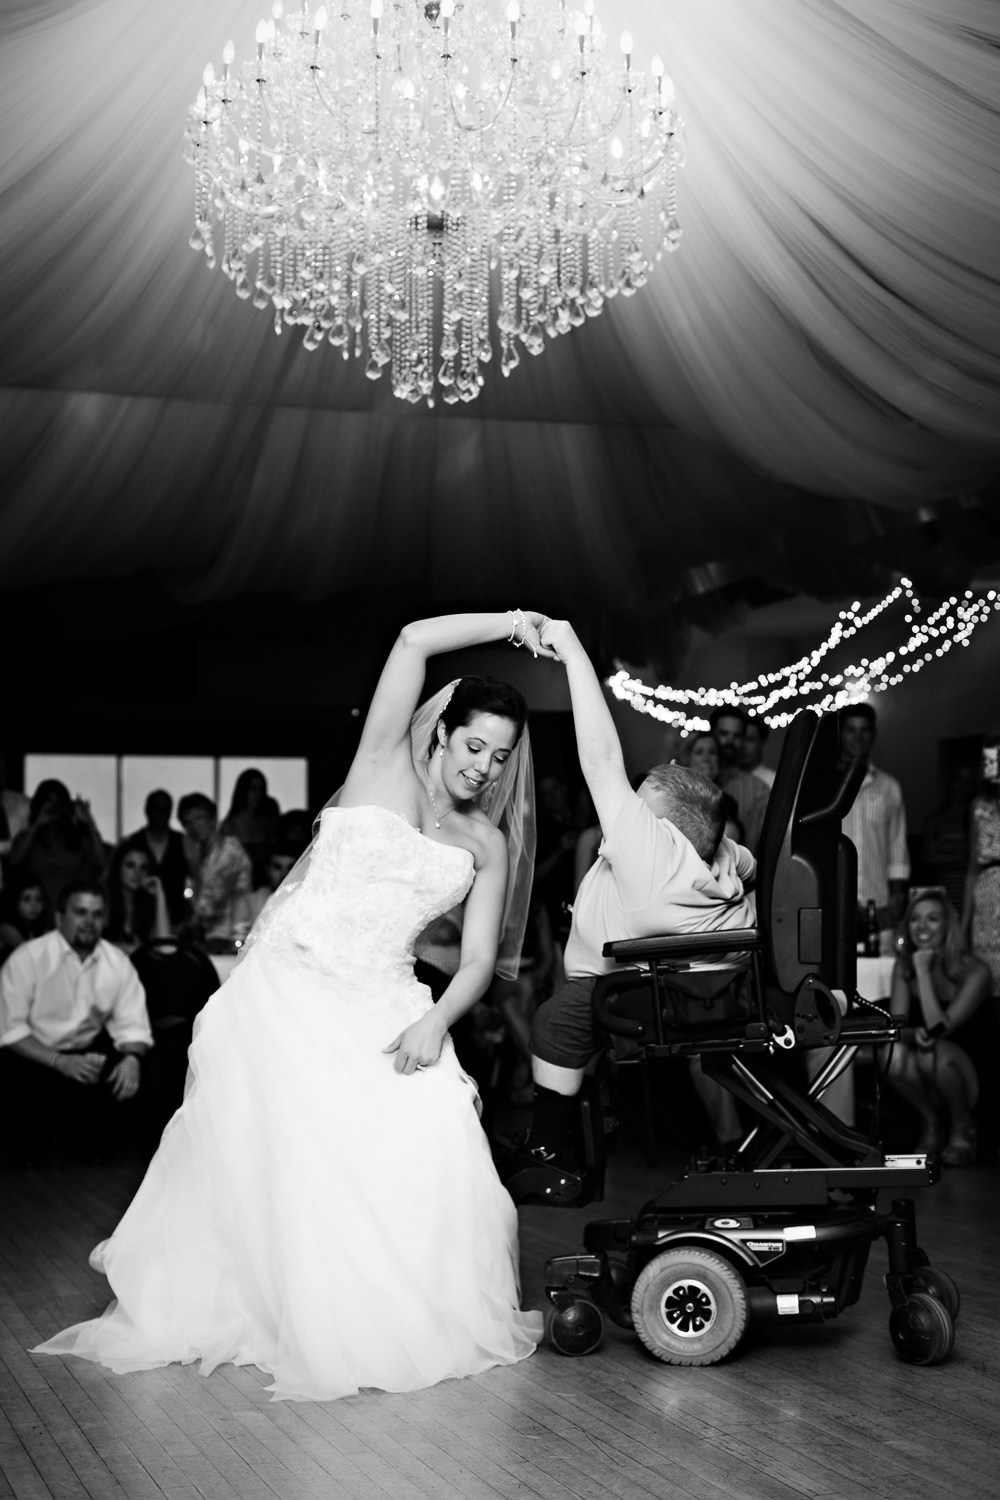 billings-wedding-eagles-bride-dancing-guest.jpg